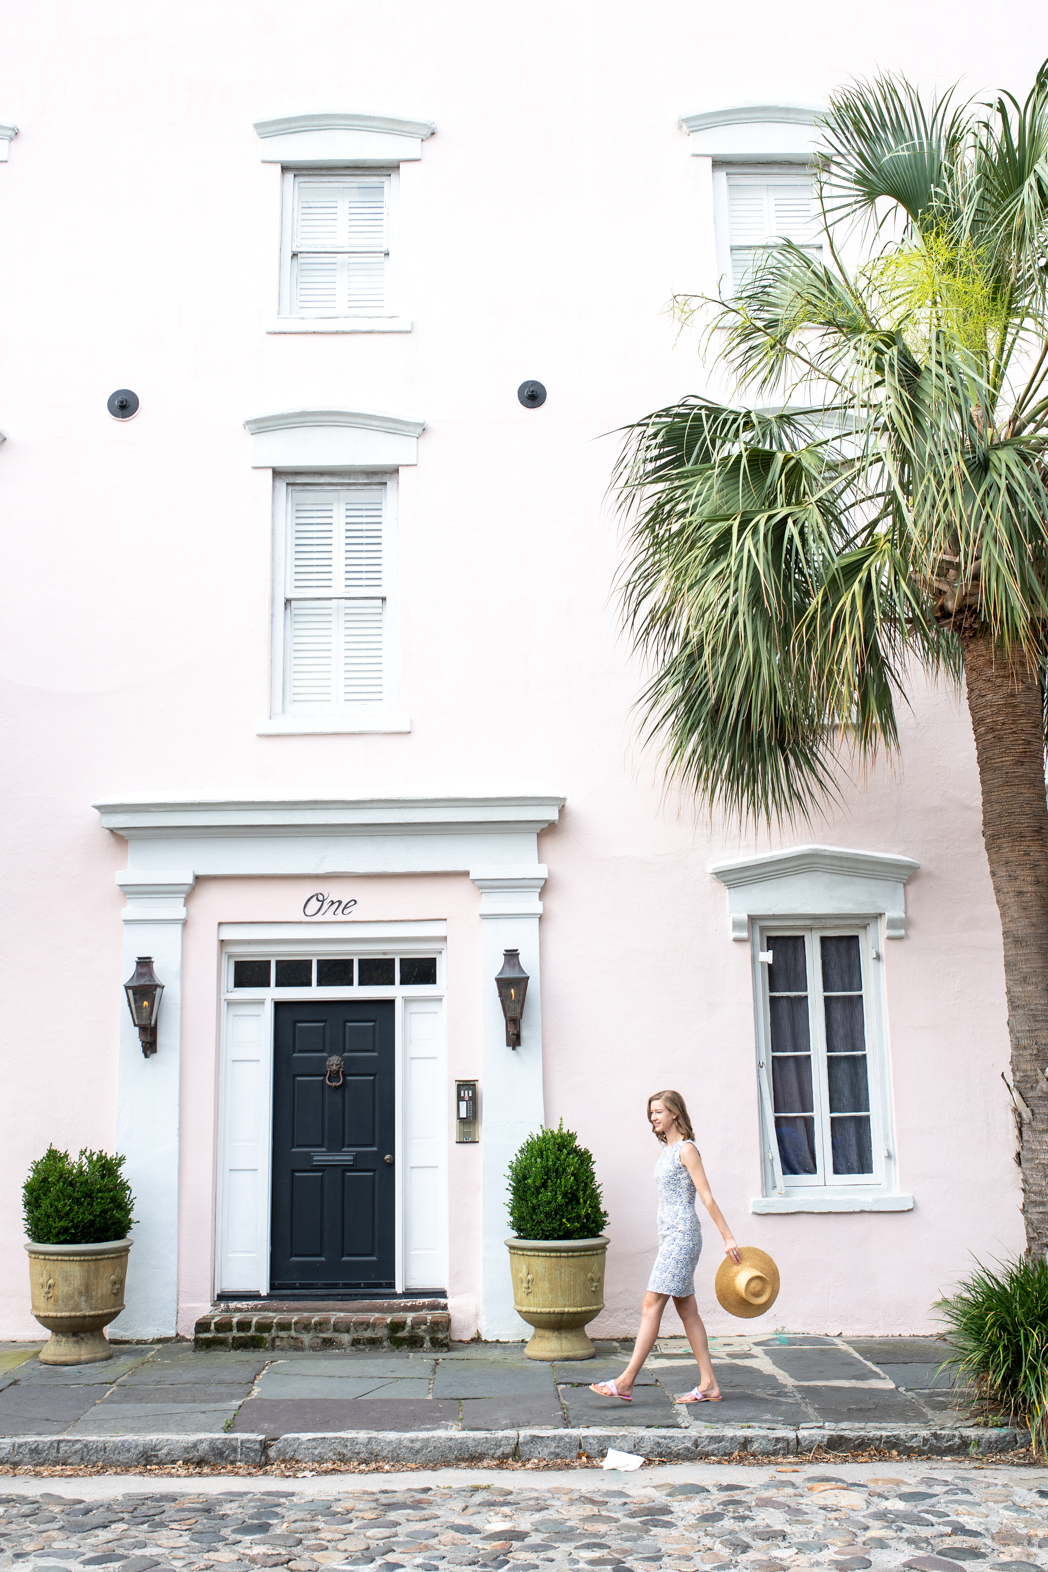 Stacie Flinner Charleston City Guide-31.jpg